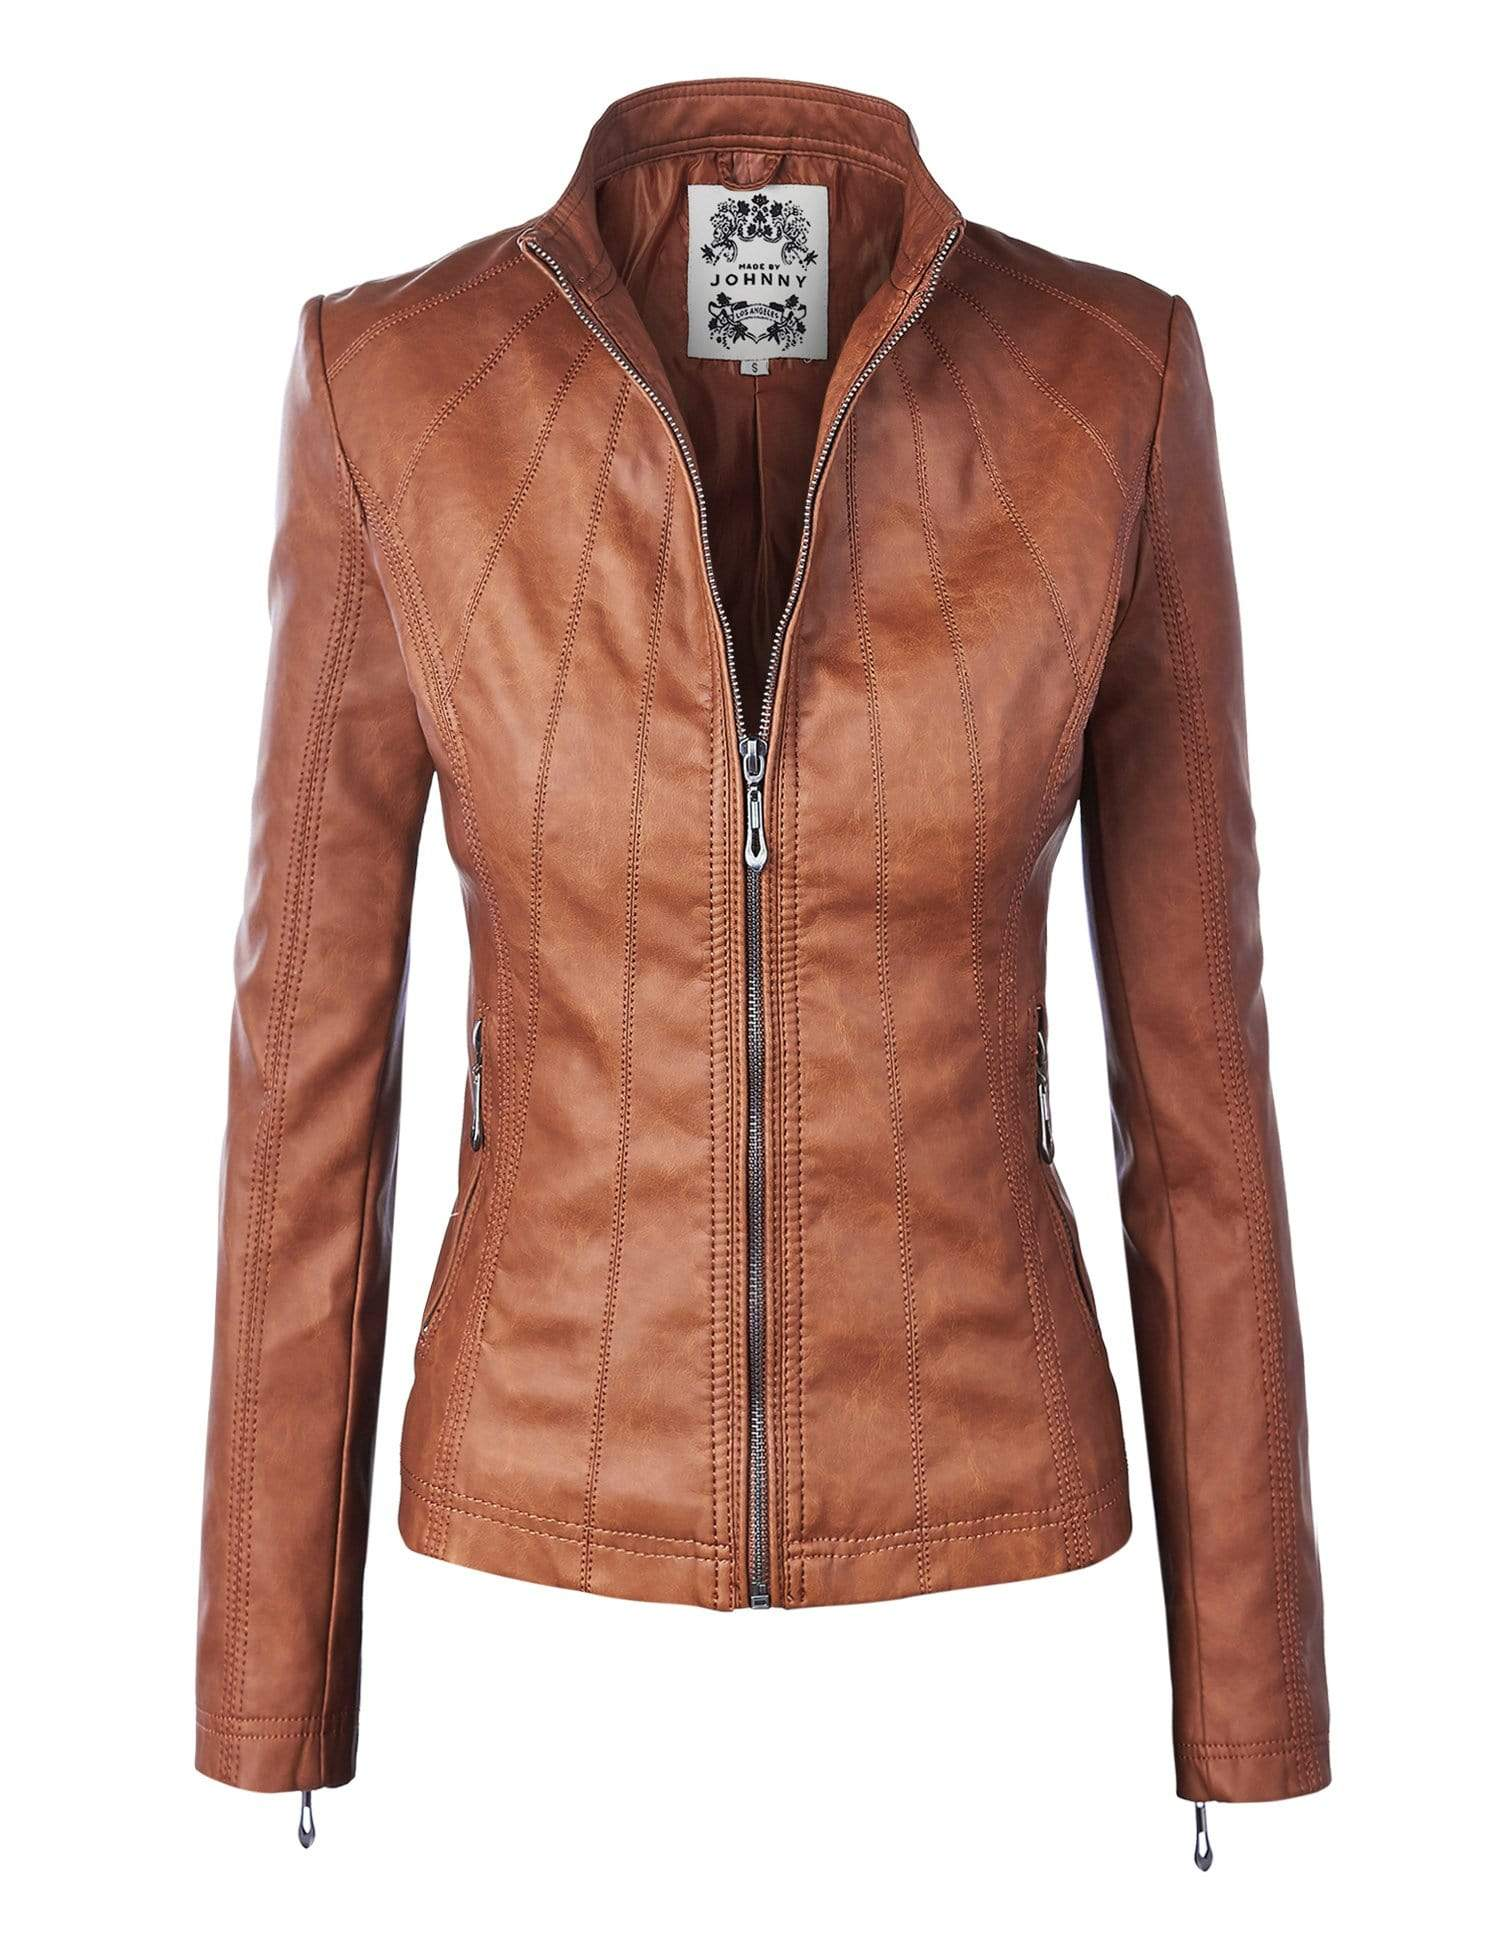 DAILYHAUTE Women's jacket CAMEL / XS Made By Johnny MBJ Womens Faux Leather Zip Up Moto Biker Jacket with Stitching Detail